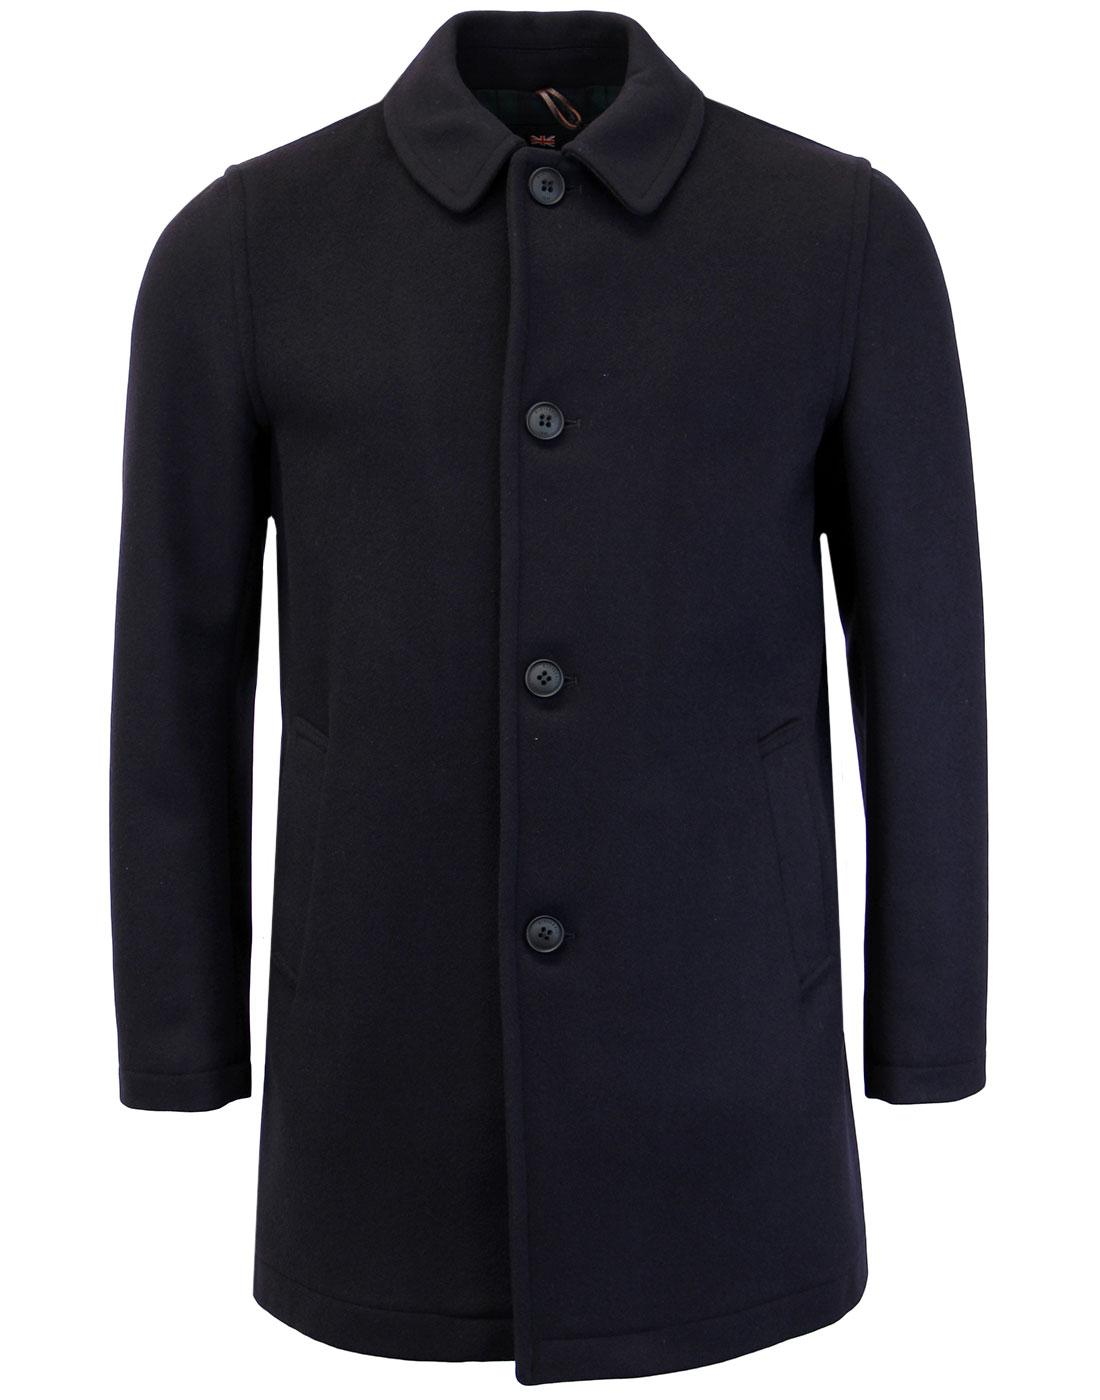 GLOVERALL Made in England 60s Mod Casual Overcoat